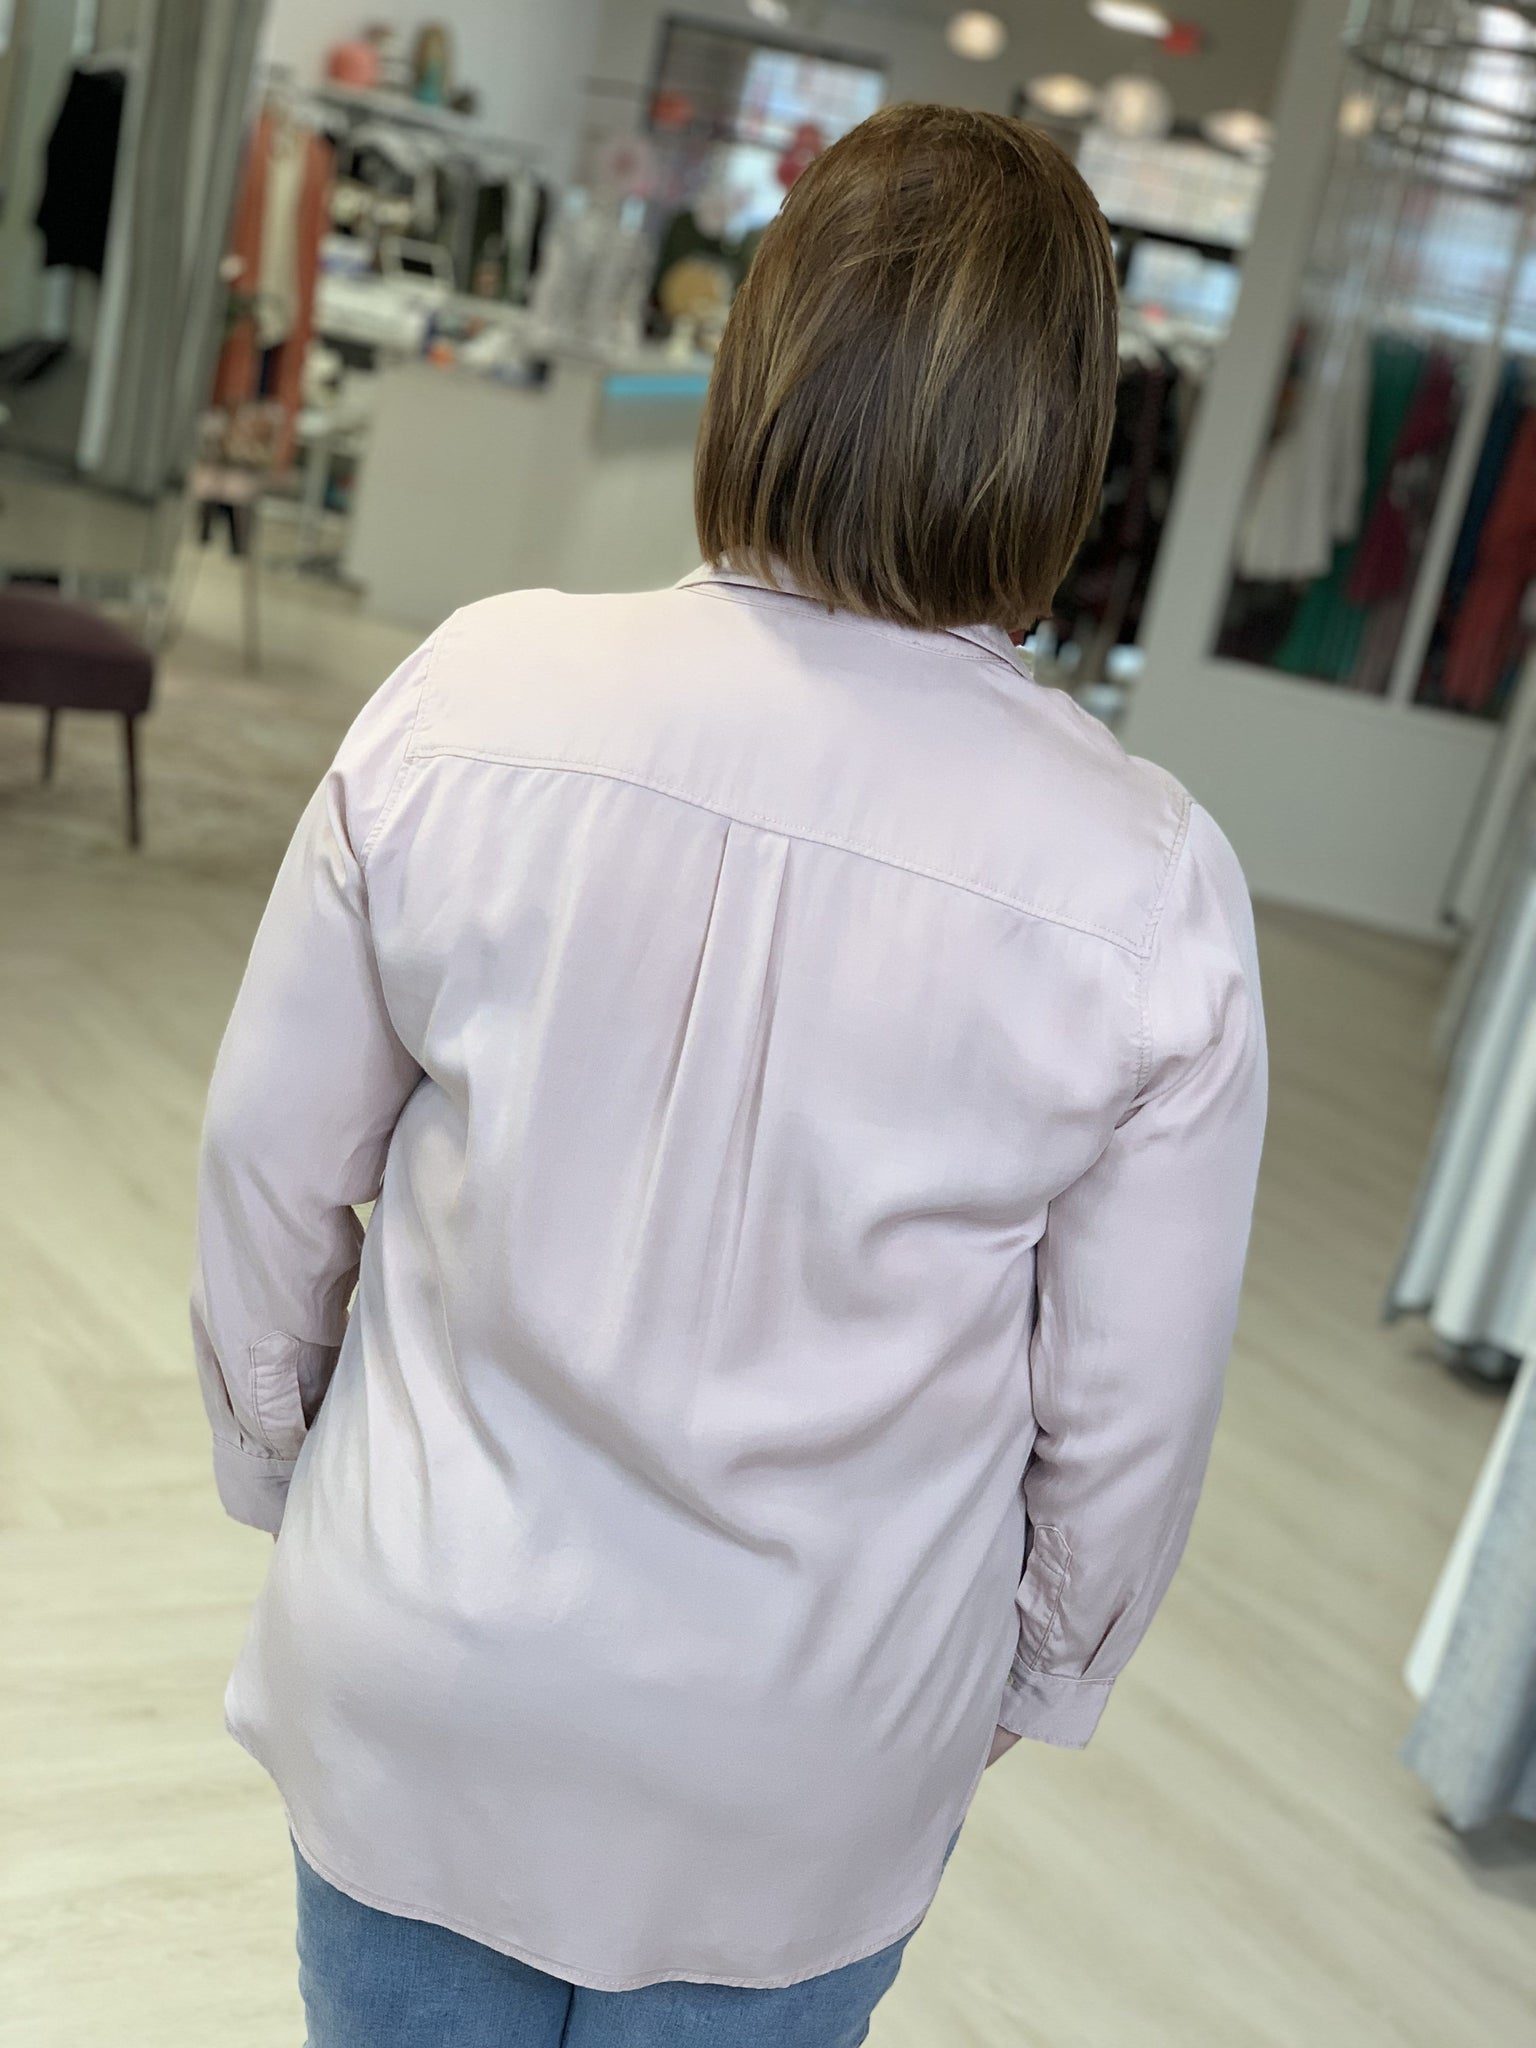 HI-LOW BUTTON UP BLOUSE WITH FRONT POCKET